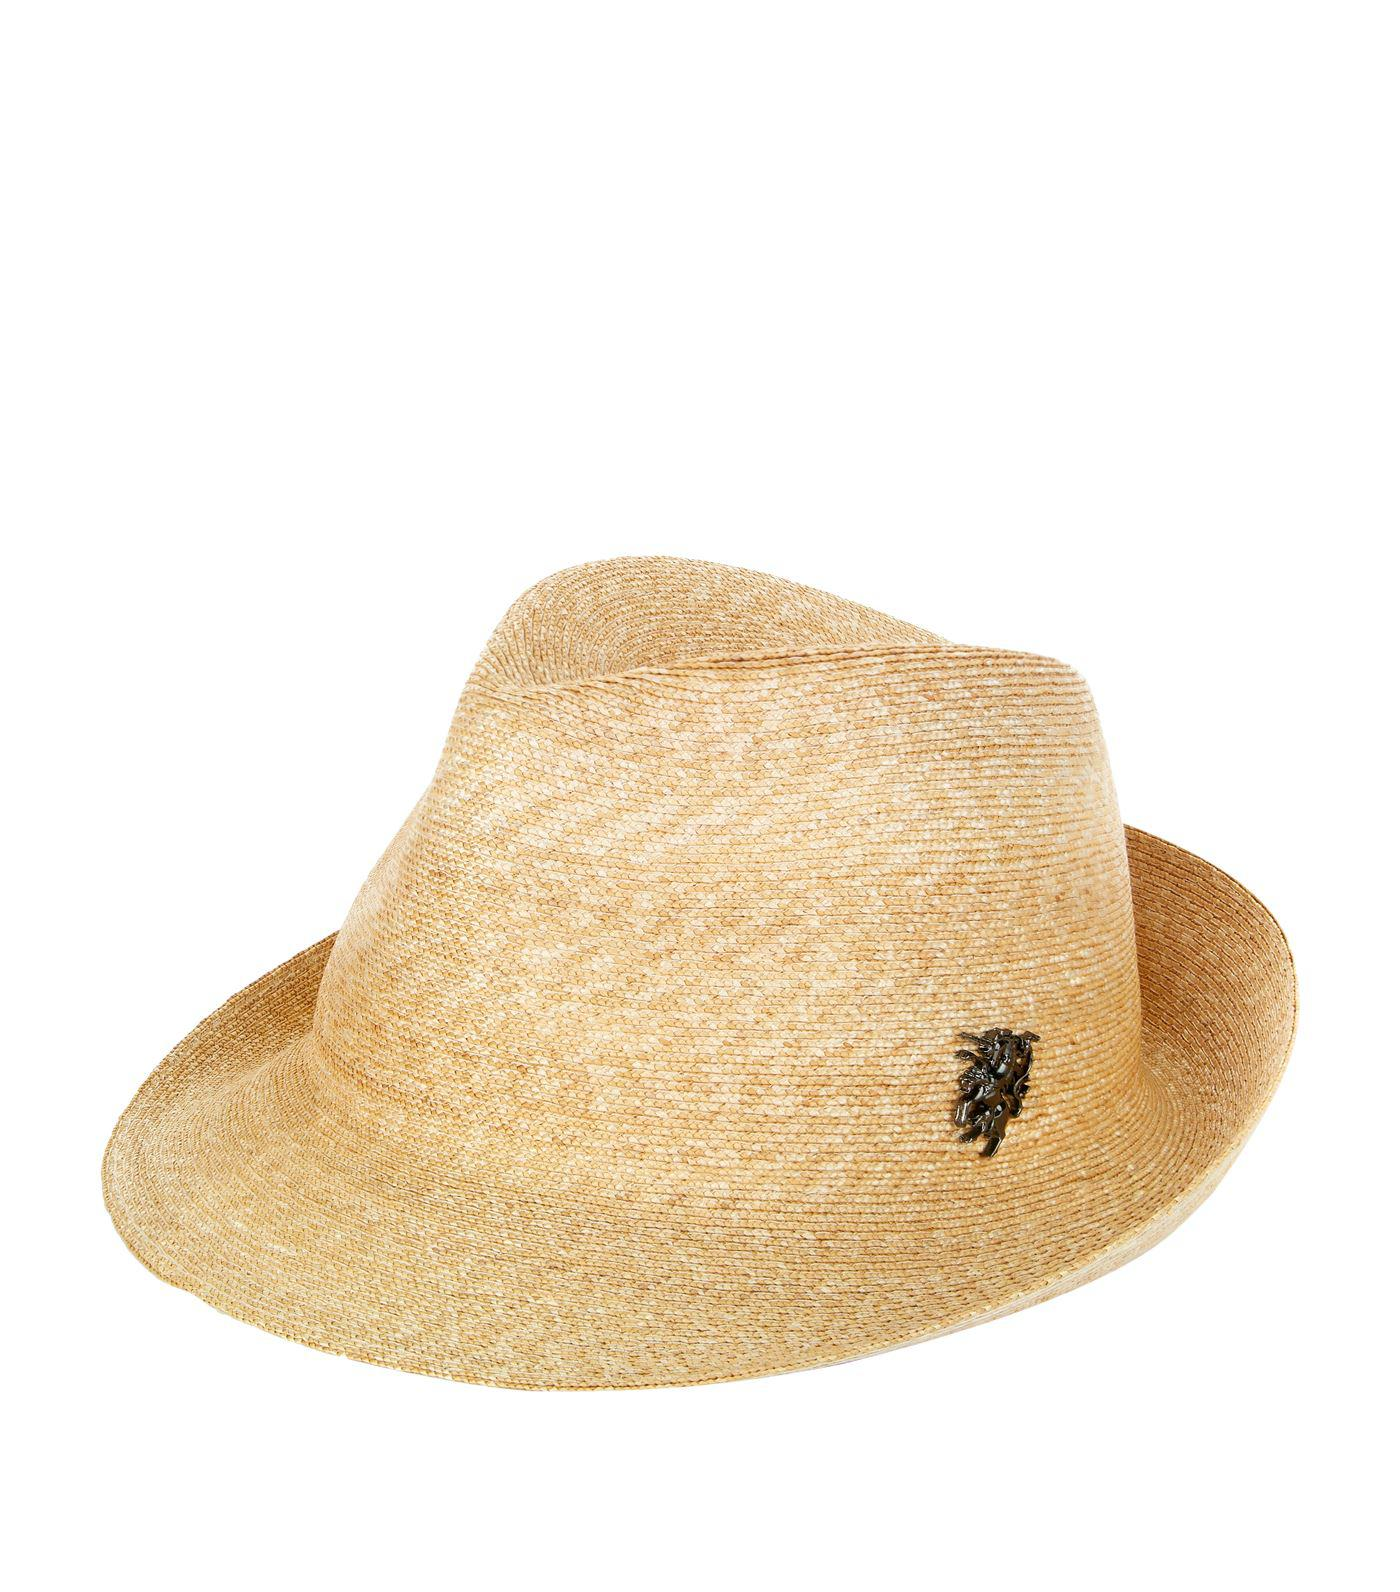 Lyst - Philip Treacy Logo Pin Trilby Hat in Natural for Men ce27e38f5052